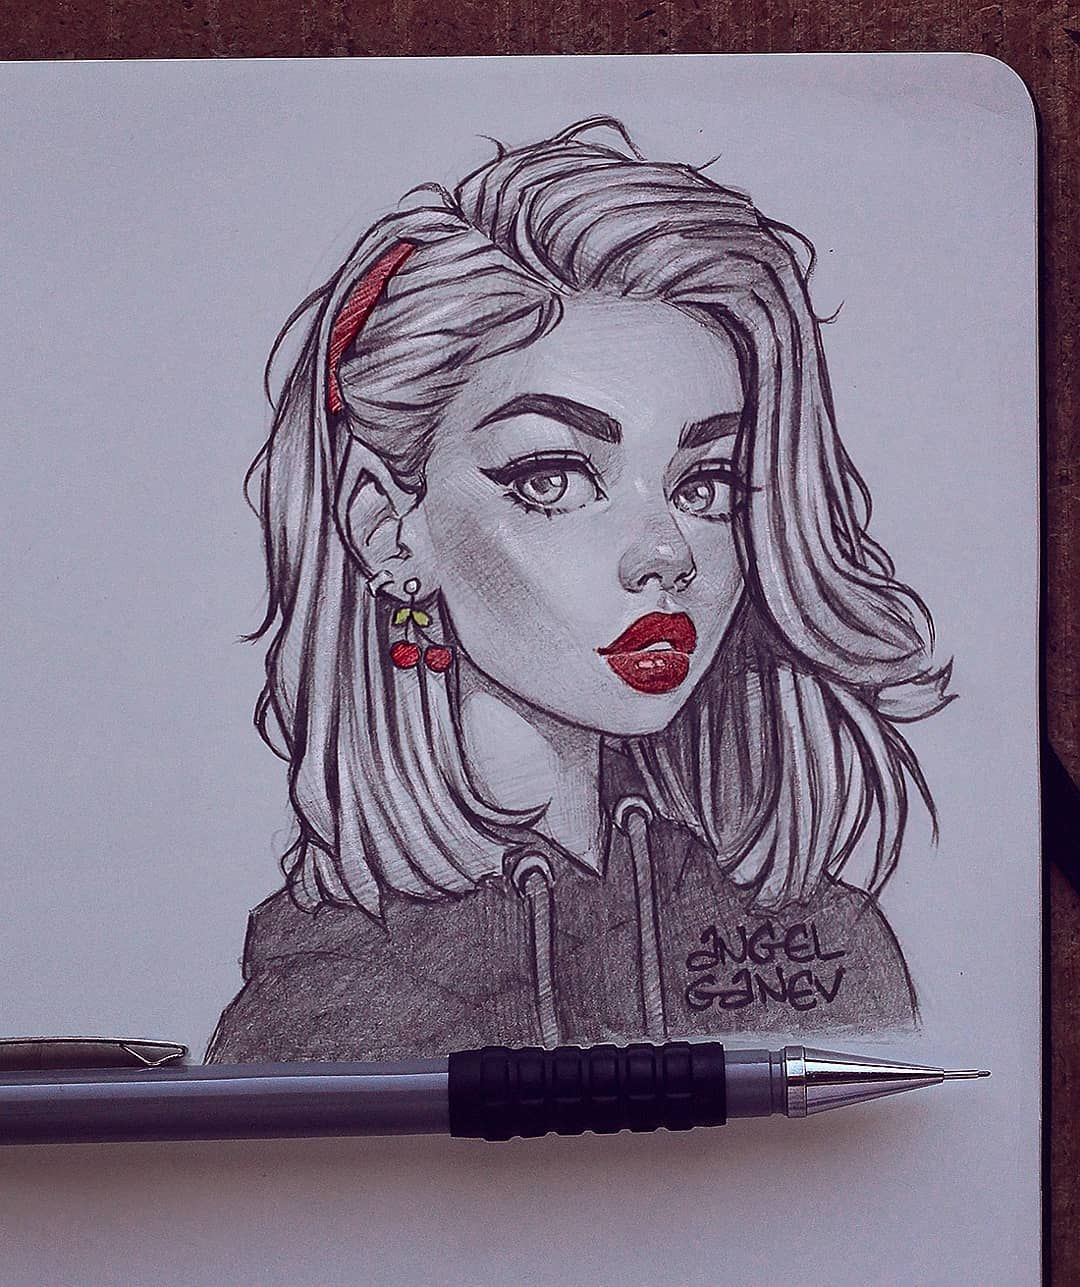 Angel Ganev On Instagram Eyy It S Ya Girll Snitchery One Of My Favorite Models To Art Drawings Sketches Creative Girl Drawing Sketches Cartoon Drawings